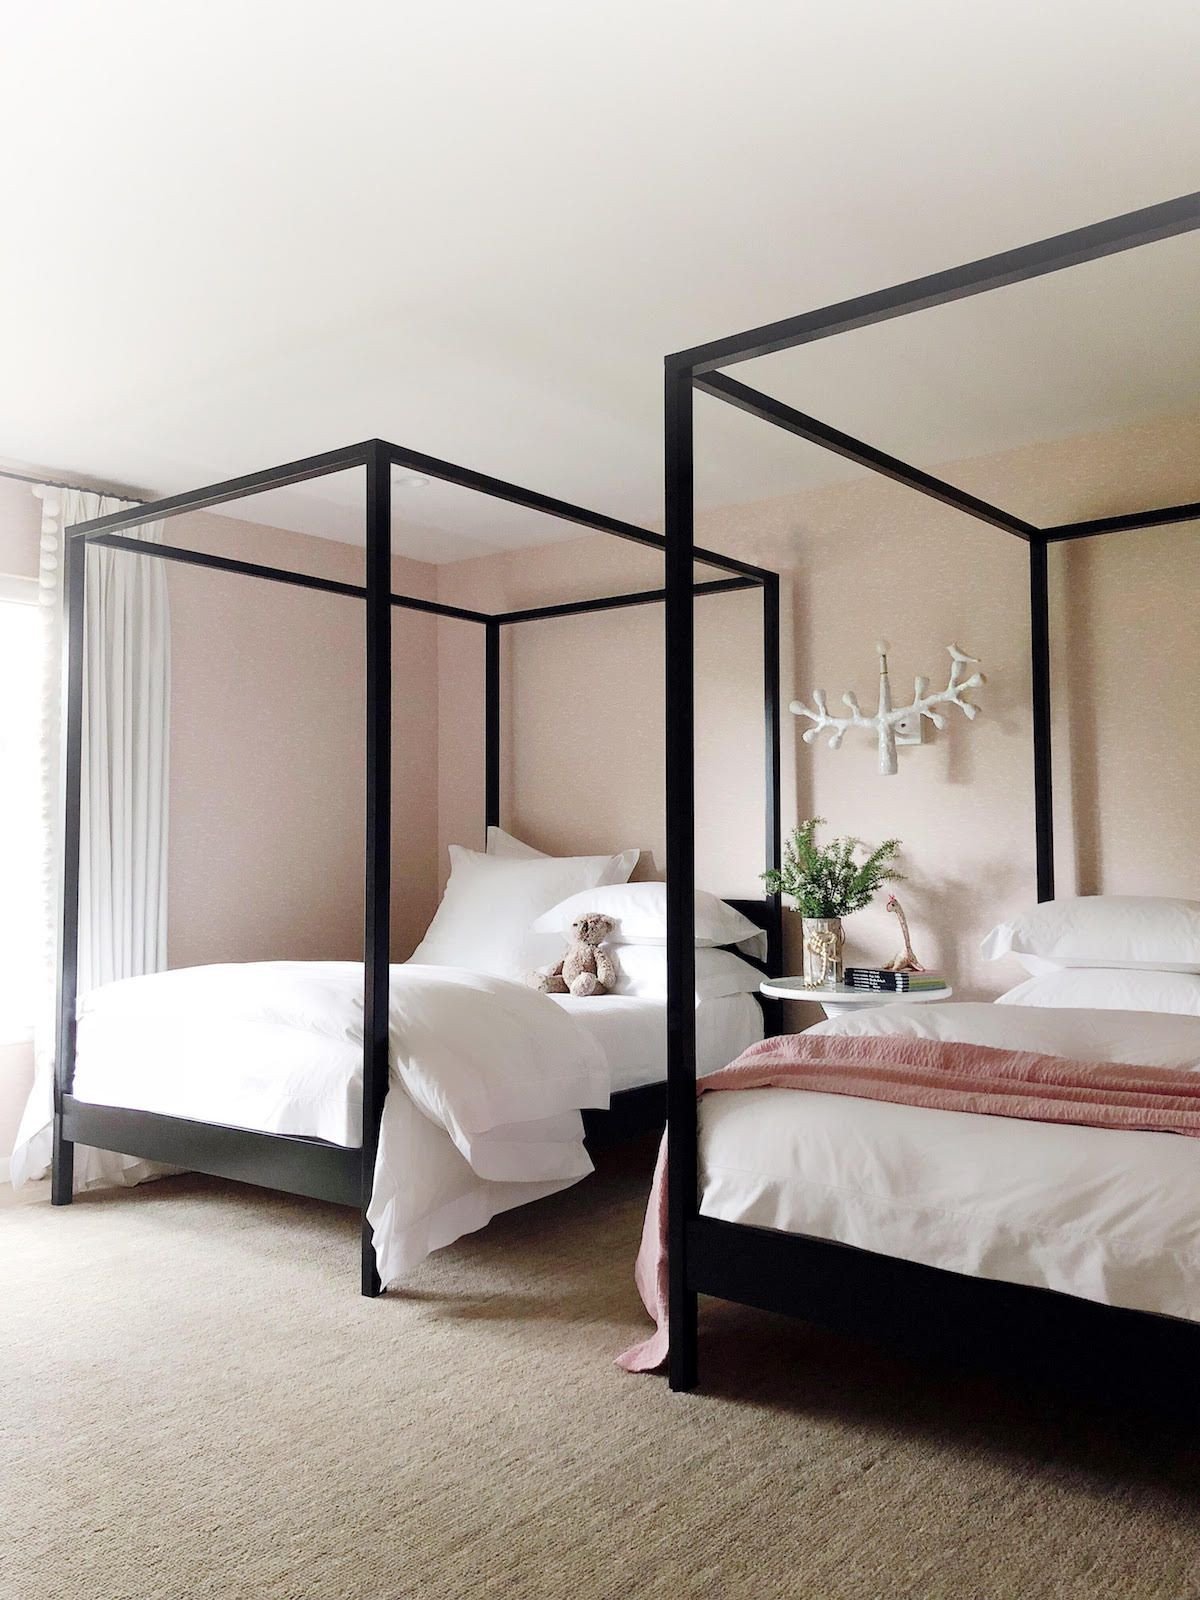 King Size Canopy Bedroom Set Beautiful Cabana Canopy Bed No Footboard In 2020